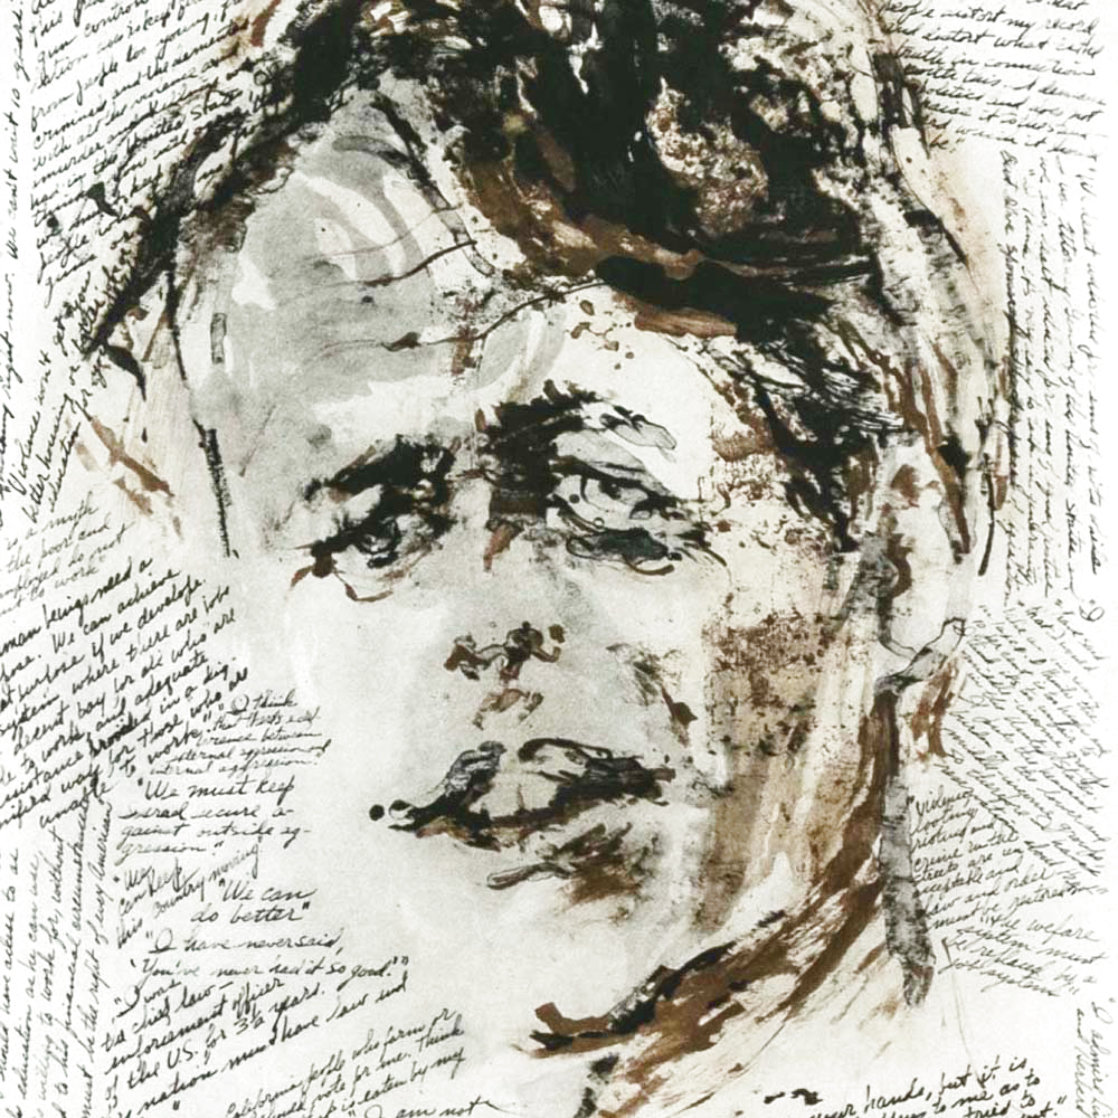 Robert F. Kennedy Memorial 1972 Limited Edition Print by LeRoy Neiman